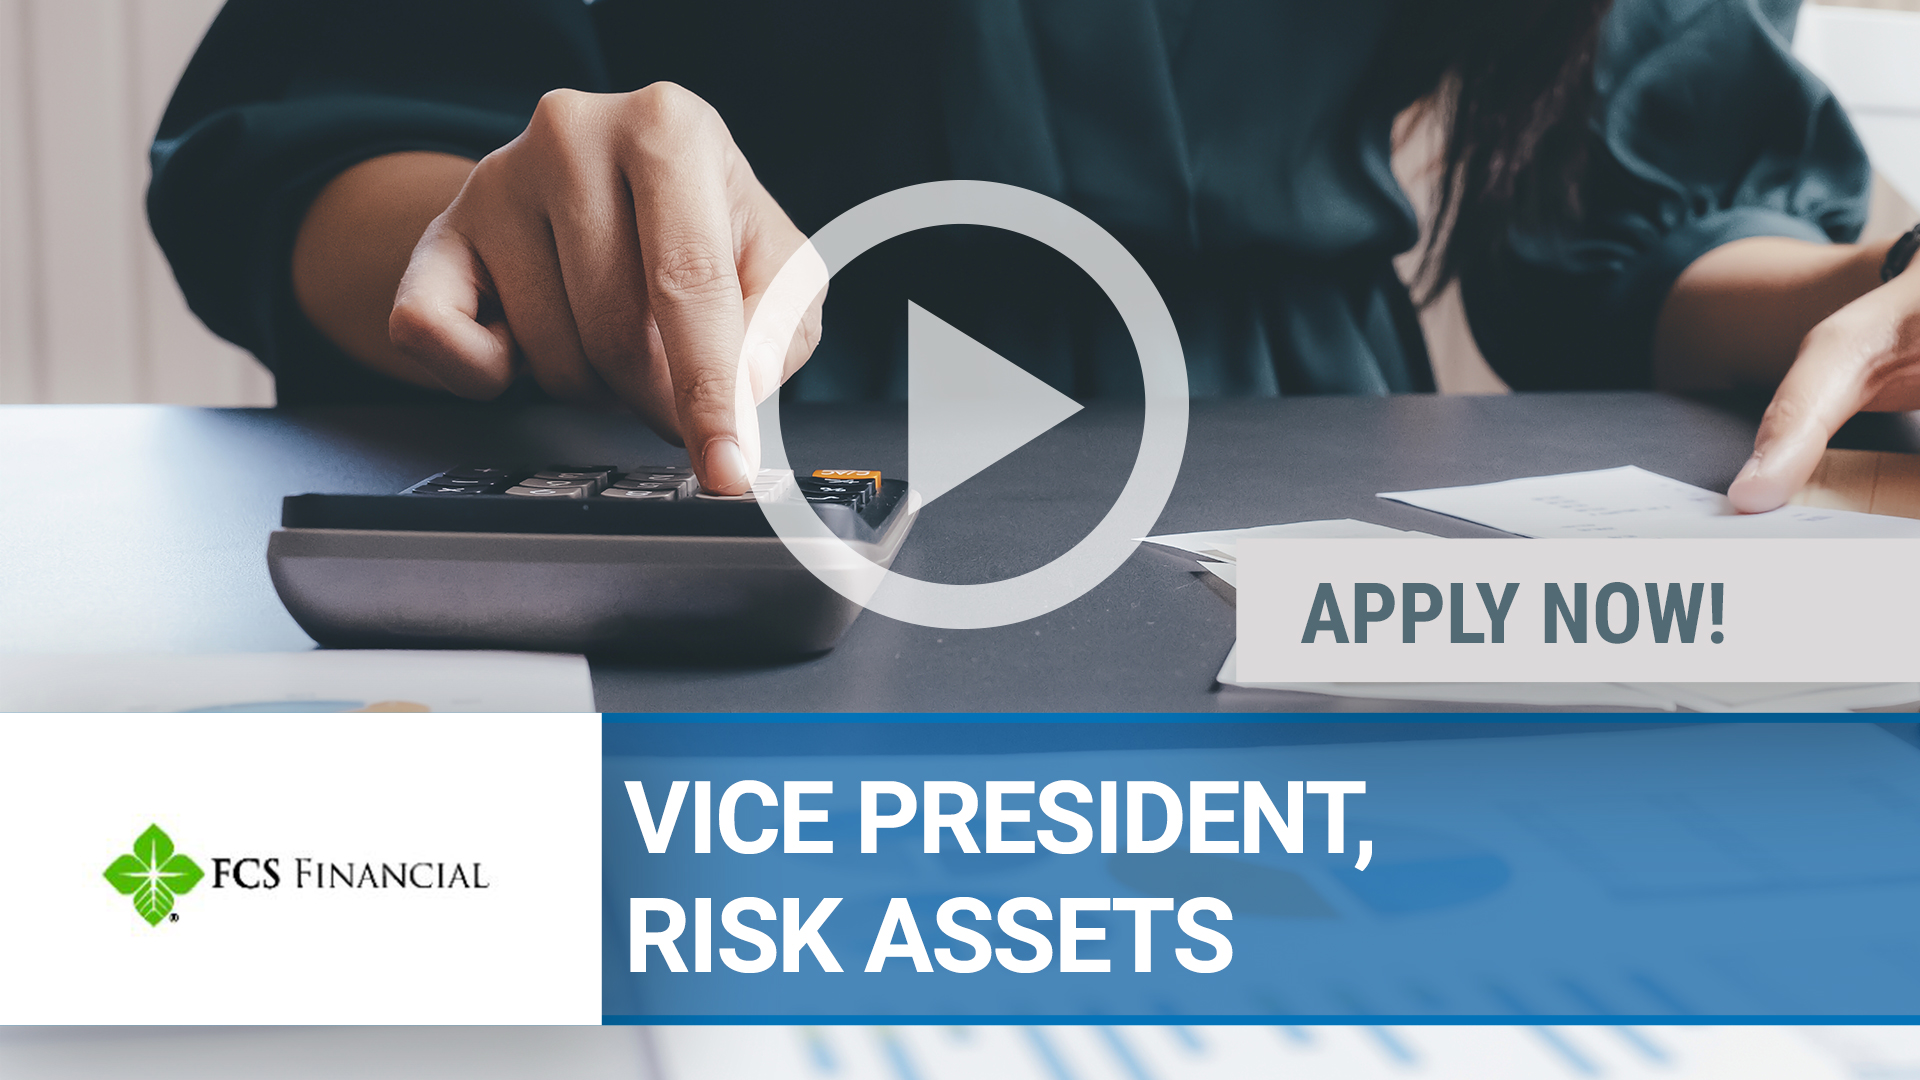 Watch our careers video for available job opening VICE PRESIDENT, RISK ASSETS in Harrisonville, MO